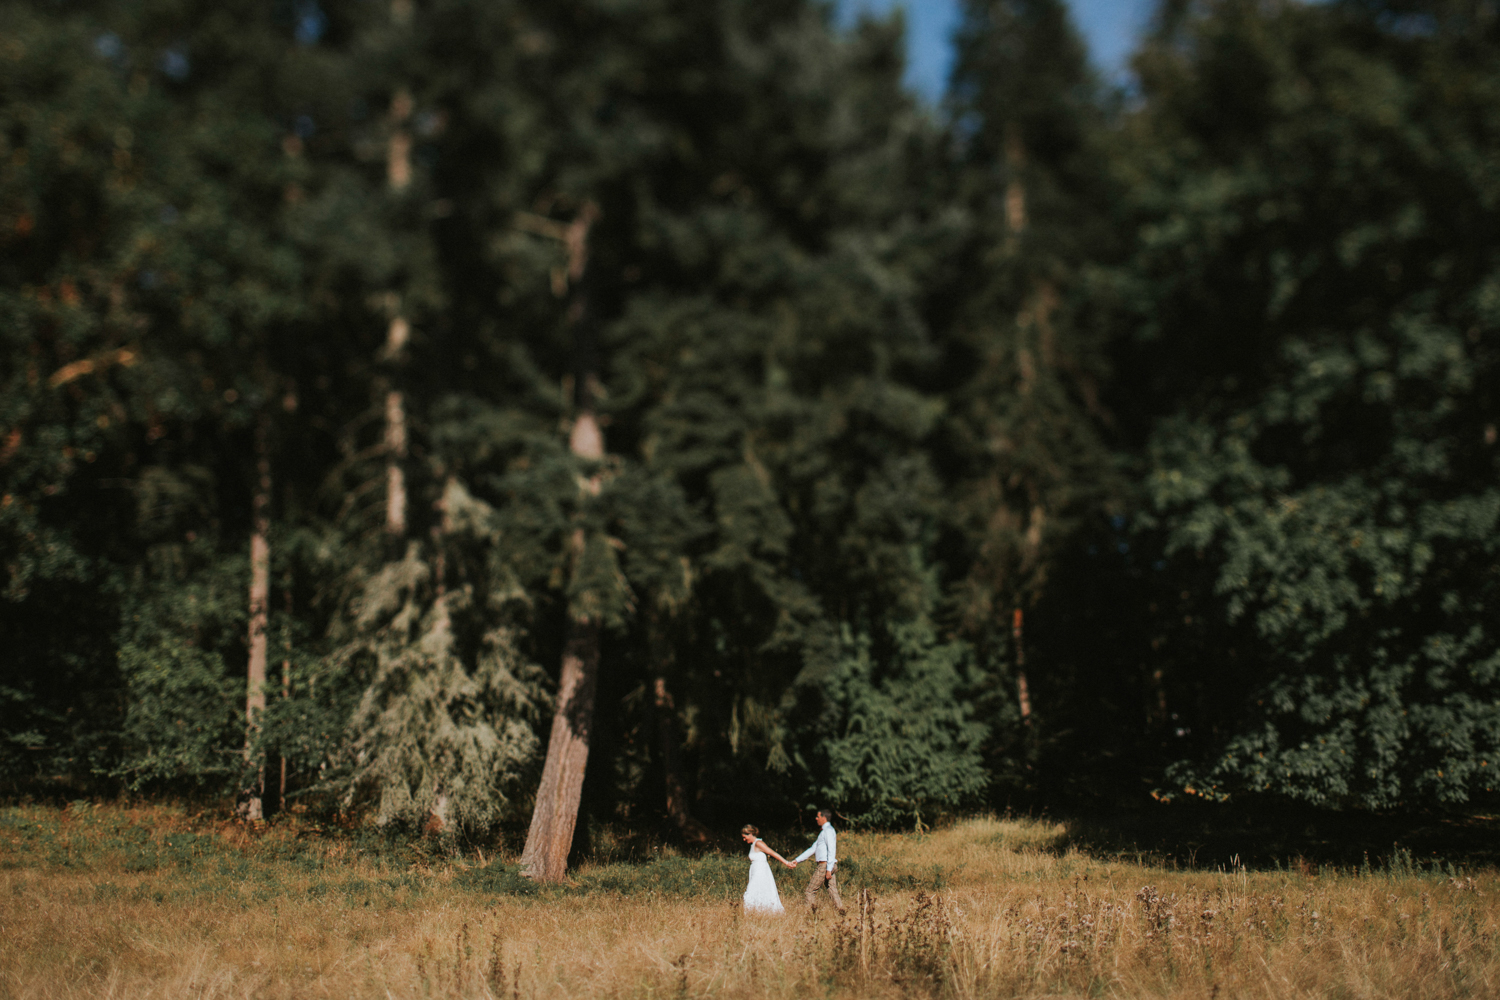 The newly wed Bride and Groom walking in the fields King Francis Park Forest Wedding Ceremony Vancouver Island